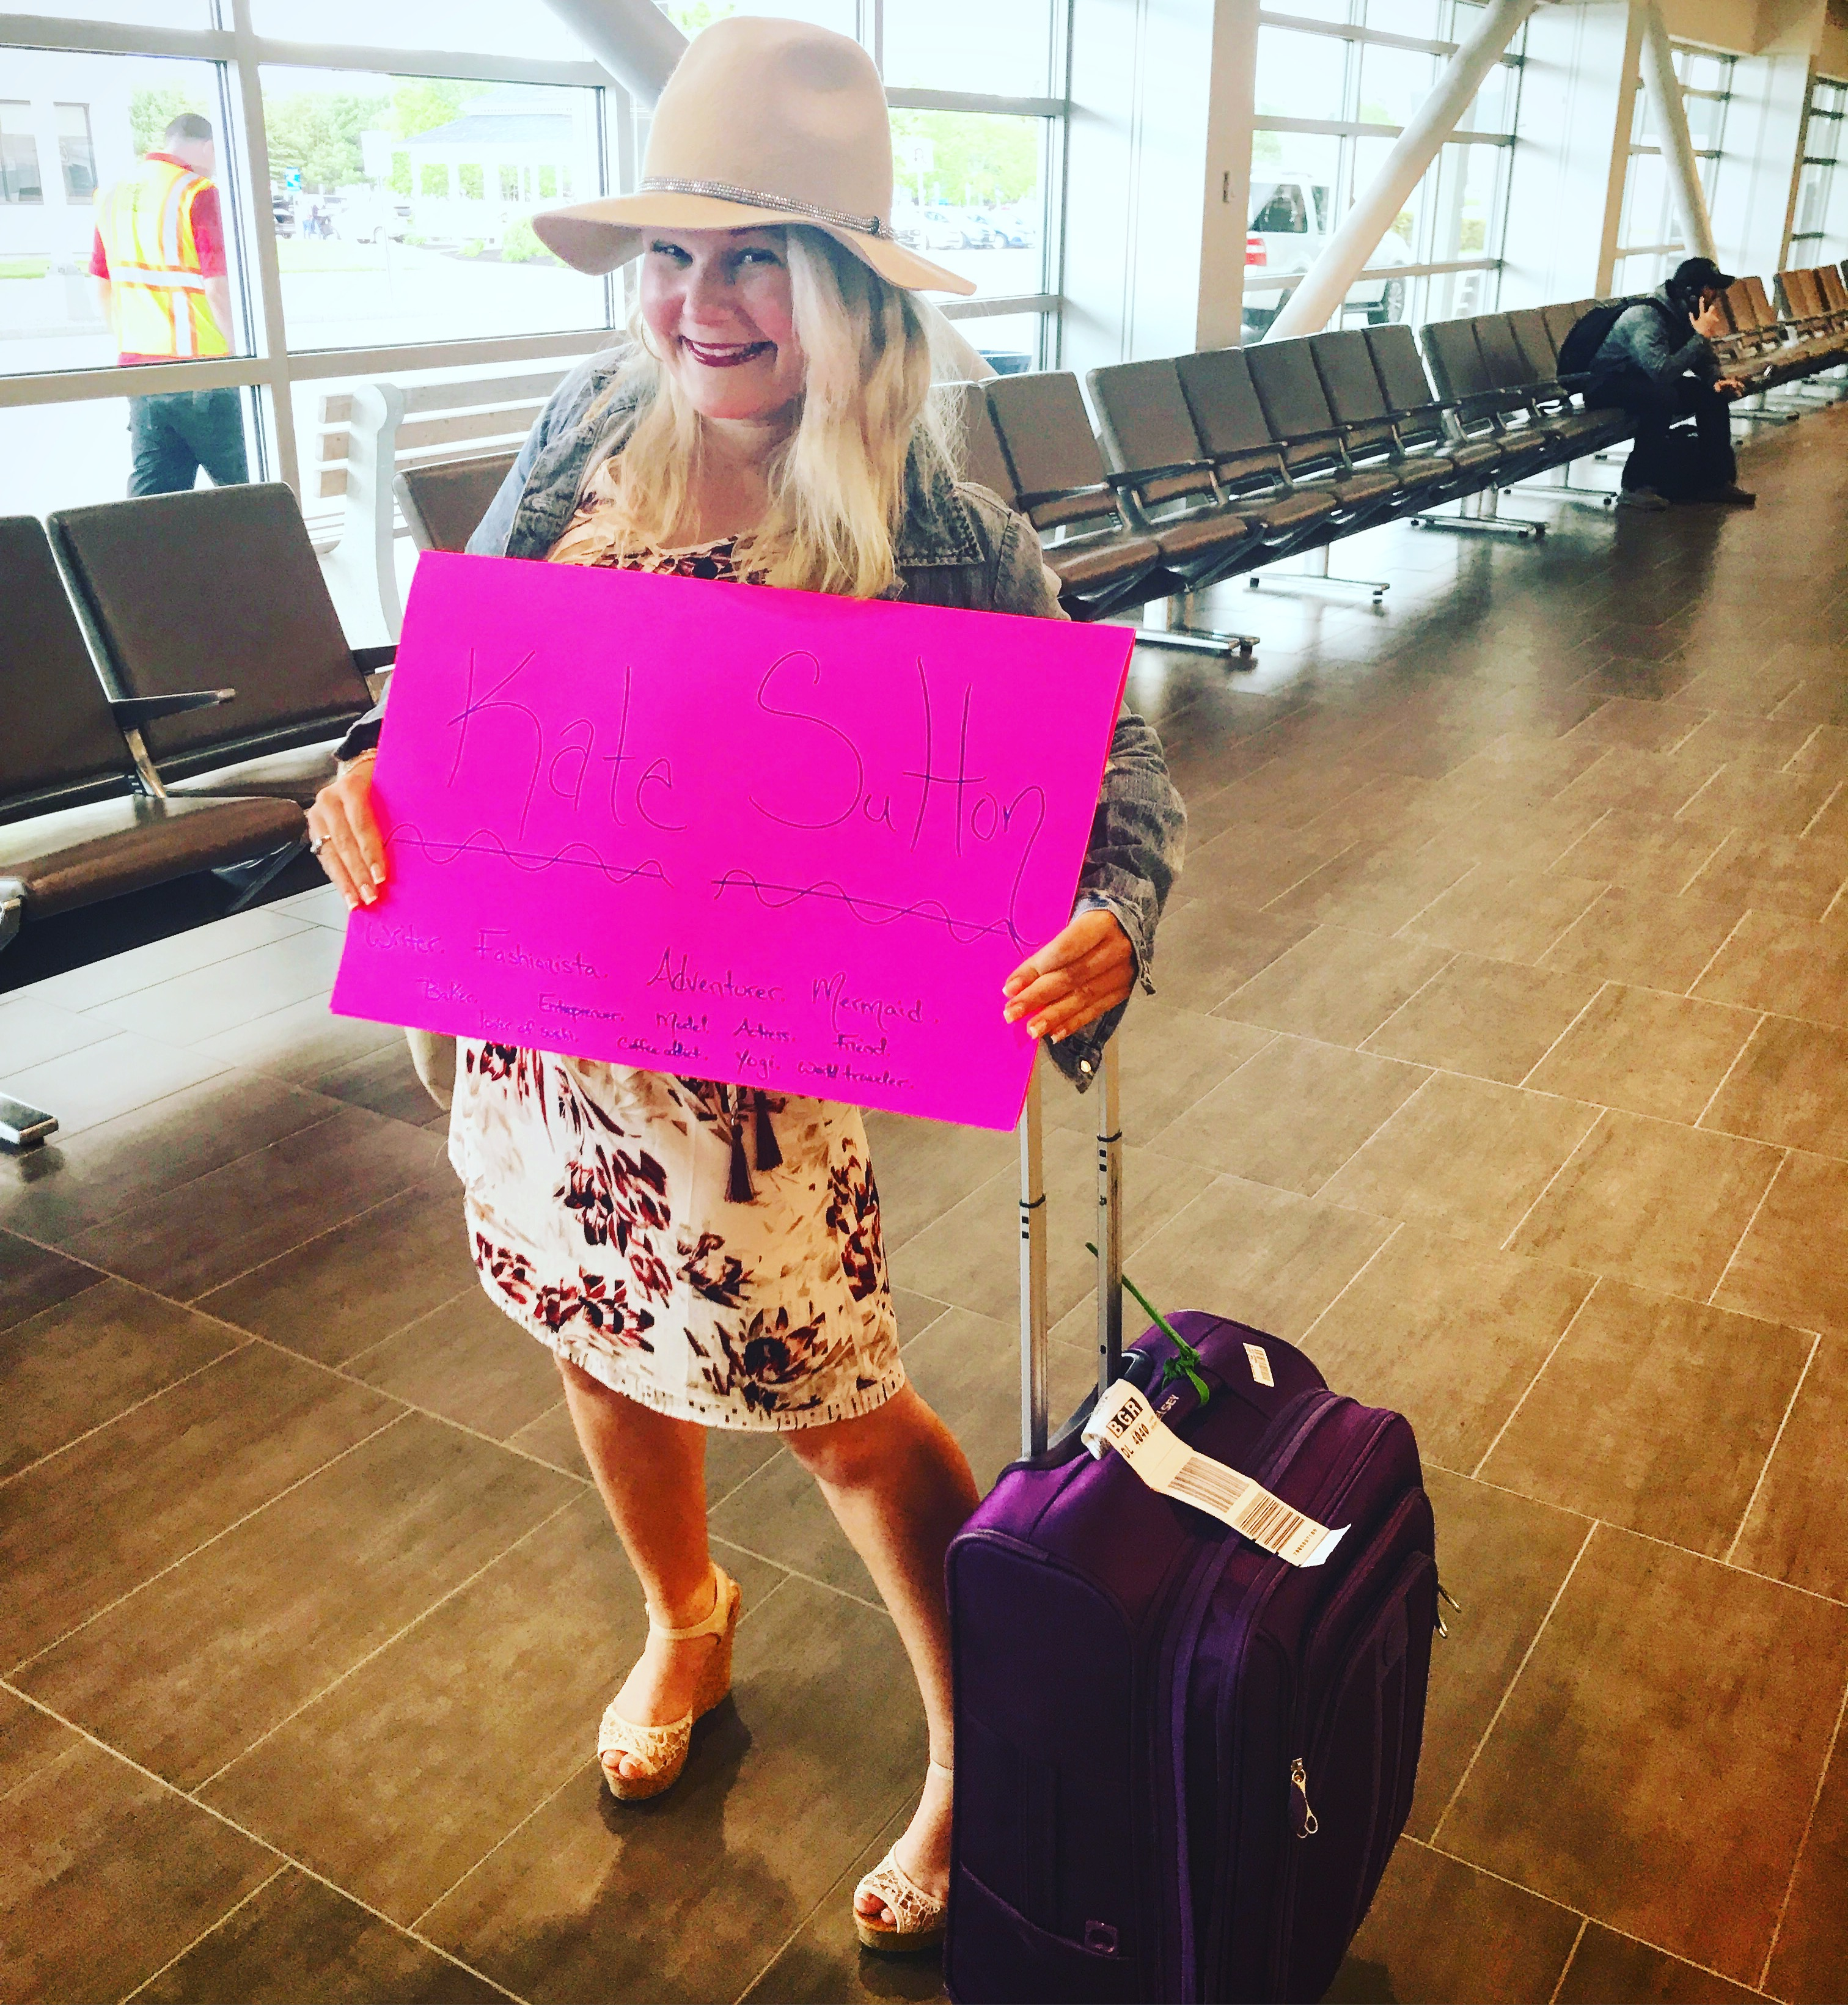 Tips and Tricks to Tickets From the Jetsetting Blonde